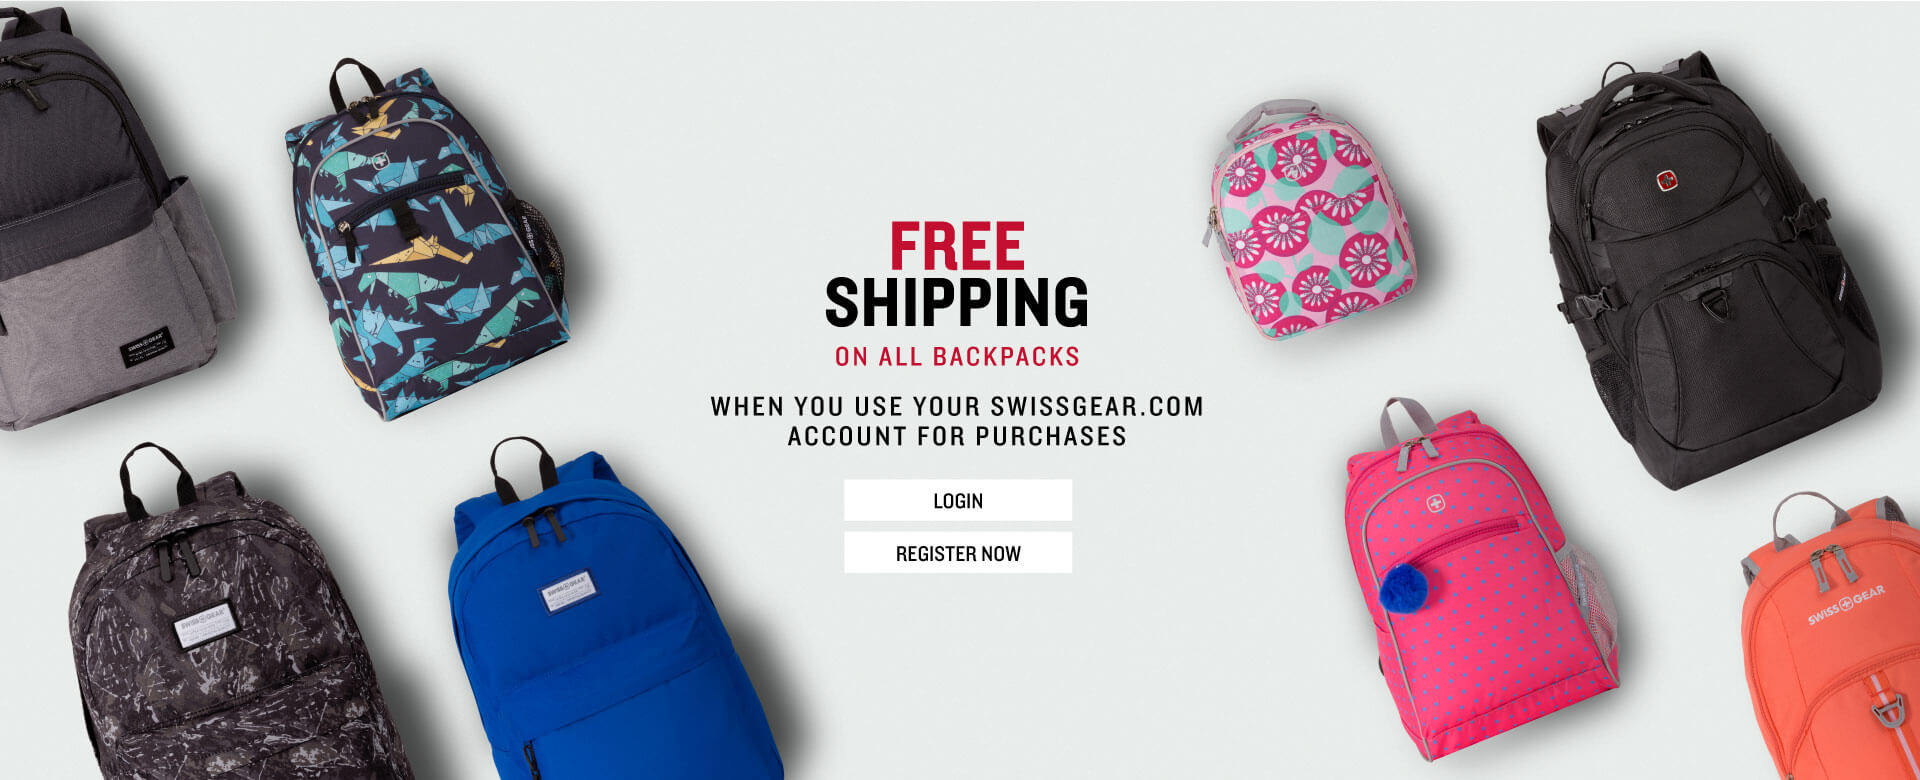 FREE SHIPPING ON BACKPACKS WHEN YOU CREATE A SWISSGEAR ACCOUNT